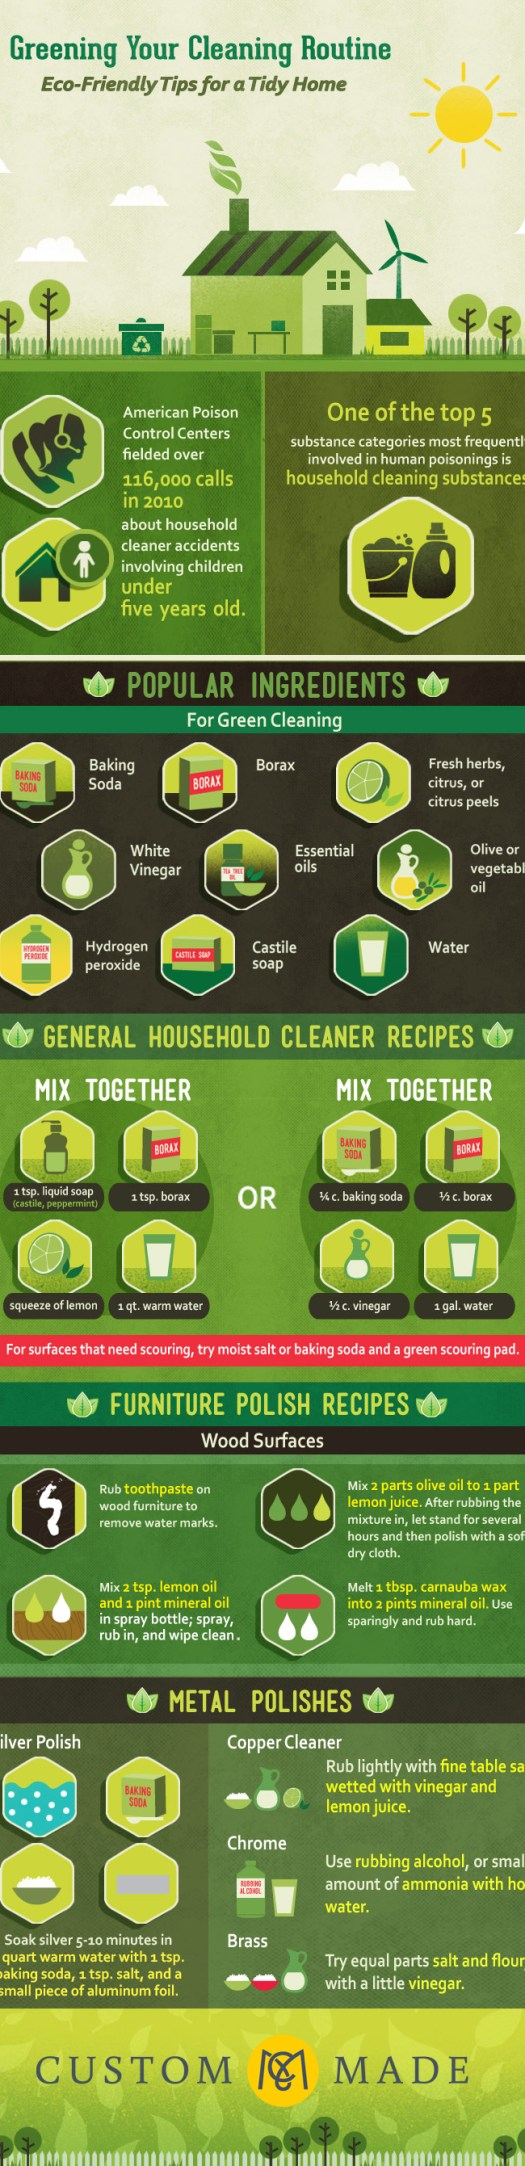 Greening Your Cleaning Routine - Eco-Friendly Tips for a Clean Home